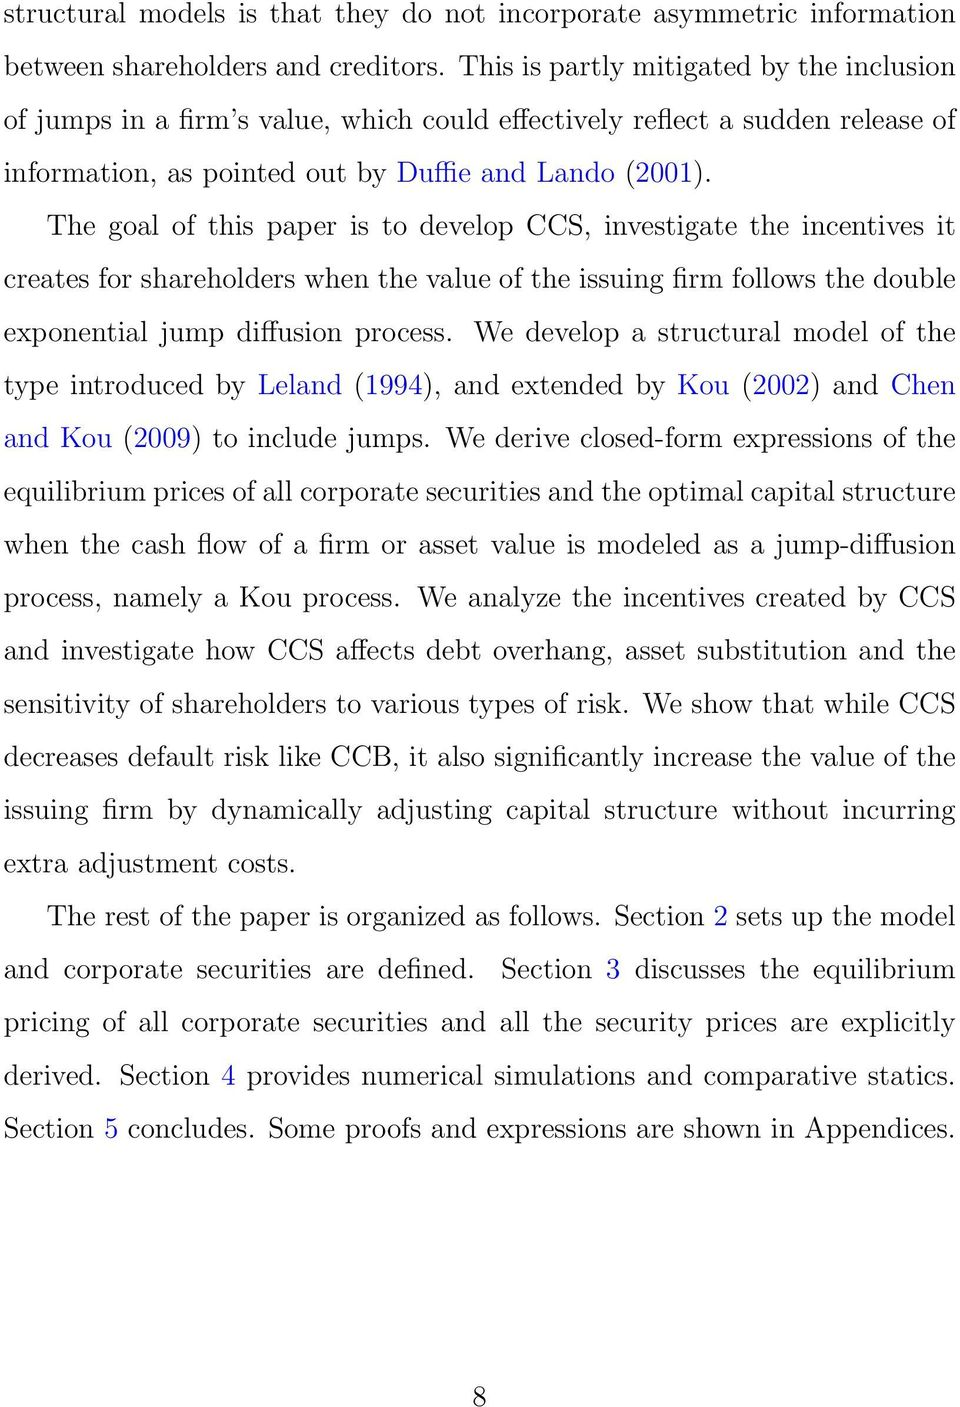 The goal of this paper is to develop CCS, investigate the incentives it creates for shareholders when the value of the issuing firm follows the double eponential jump diffusion process.